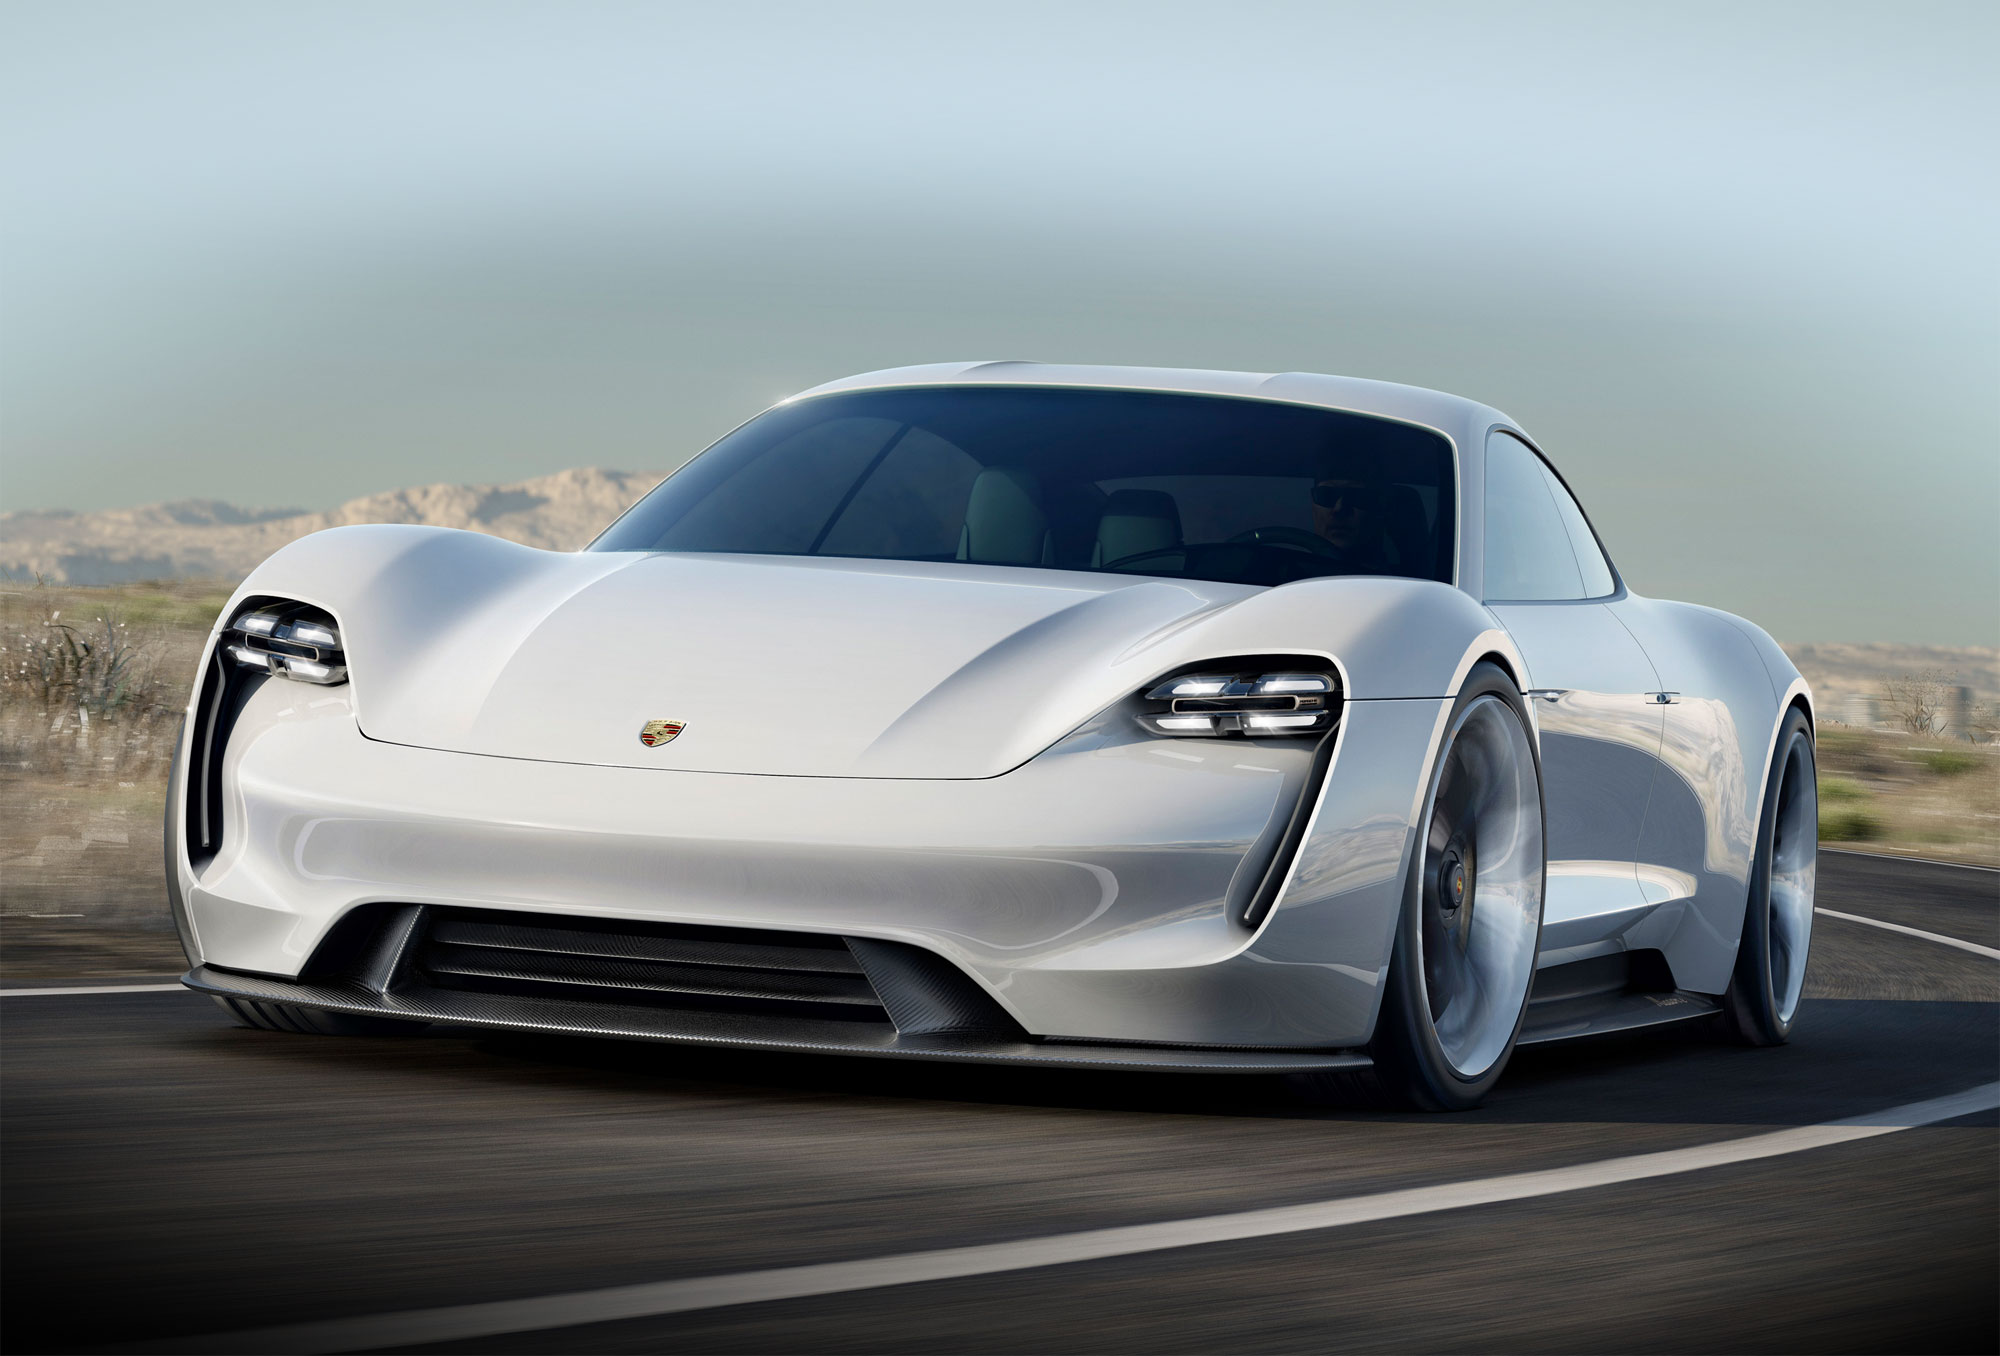 Porsche Mission E: 600 hp, 500 kilometer driving range, 15 minutes charging time!